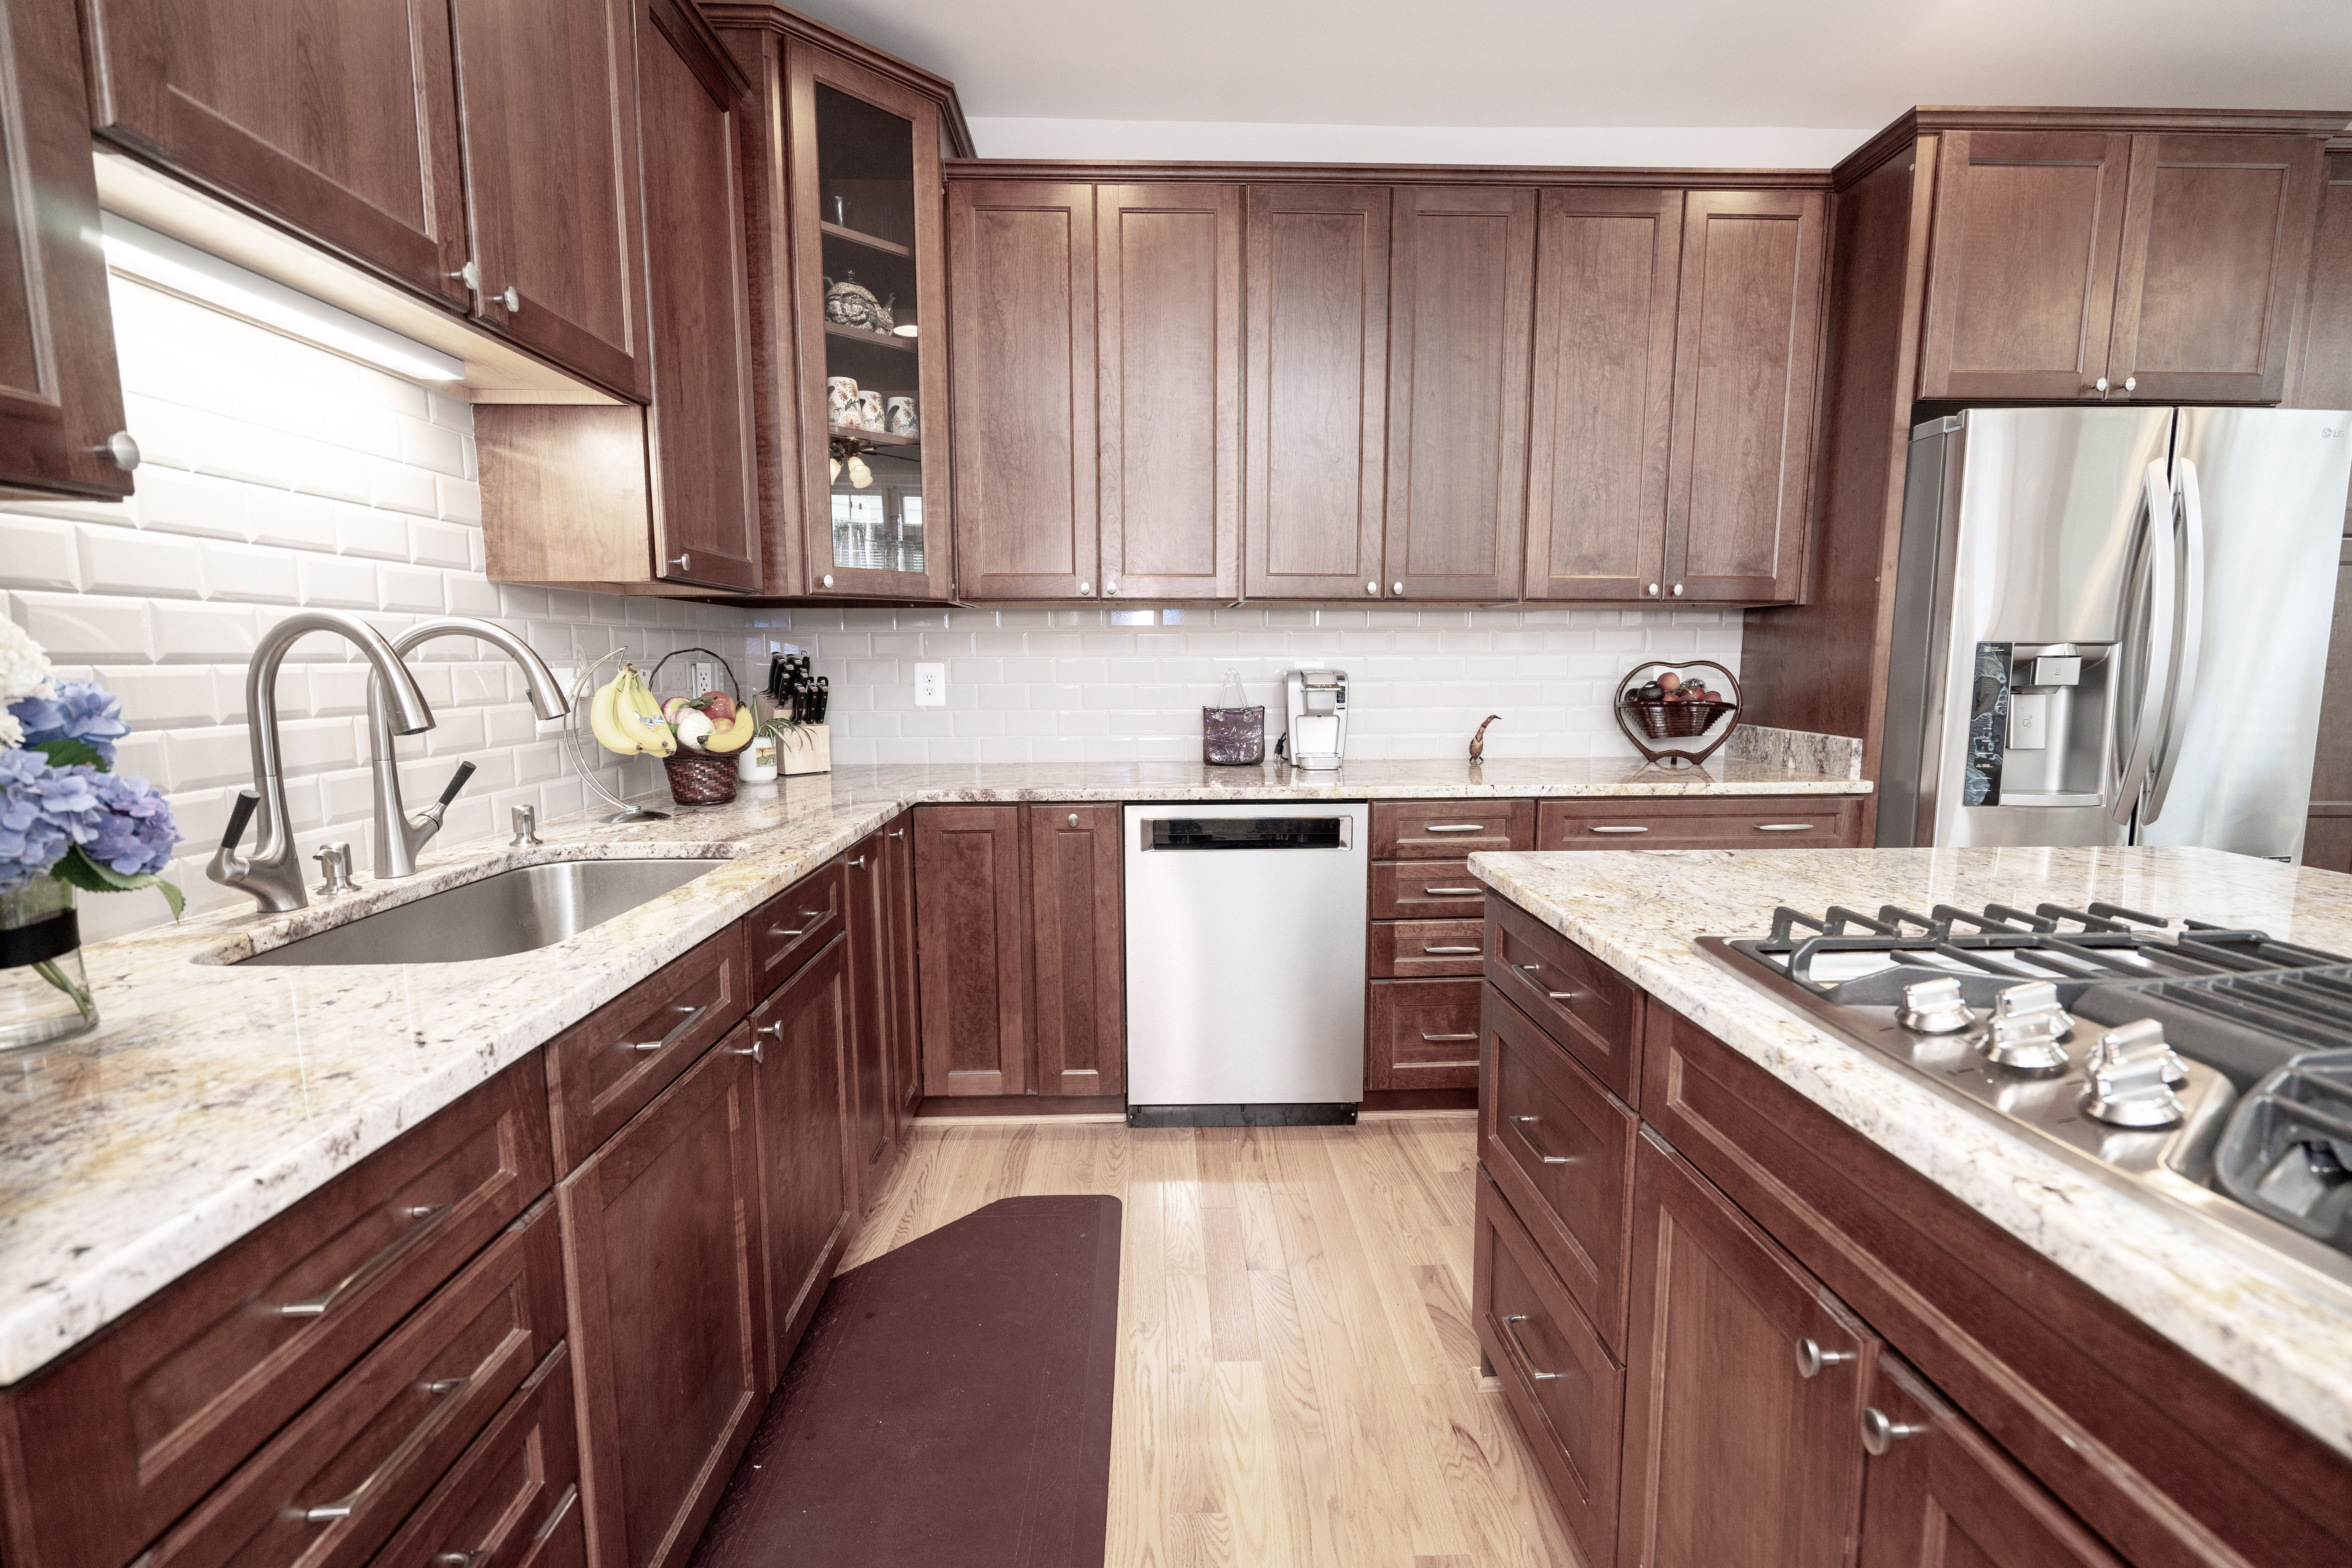 Kitchen Remodeling In Fairfax Va Bath Remodeling Usa Cabinet Store Kitchen And Bath Showroom Country Kitchen Decor Kitchen Remodel